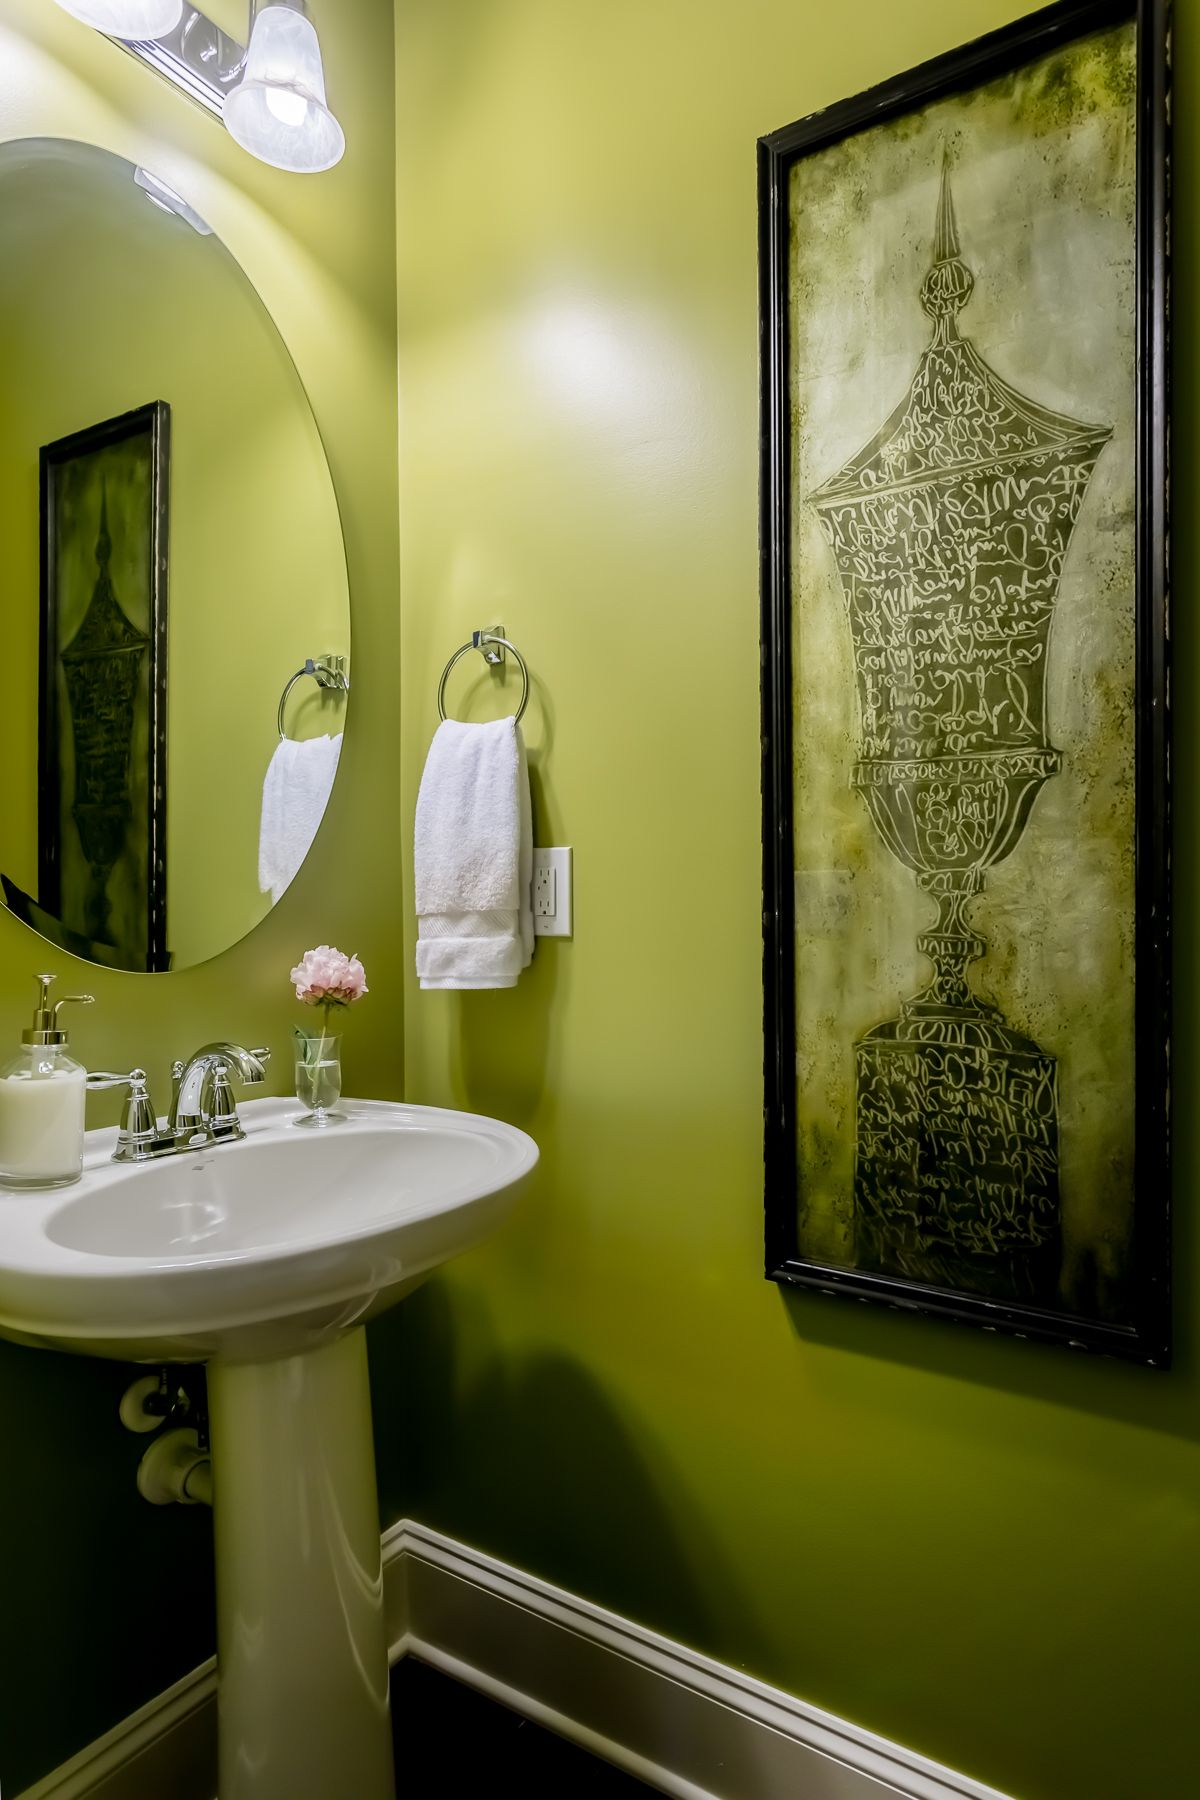 Bathroom Decorating Ideas That Add Pizazz to Your Powder Room ...